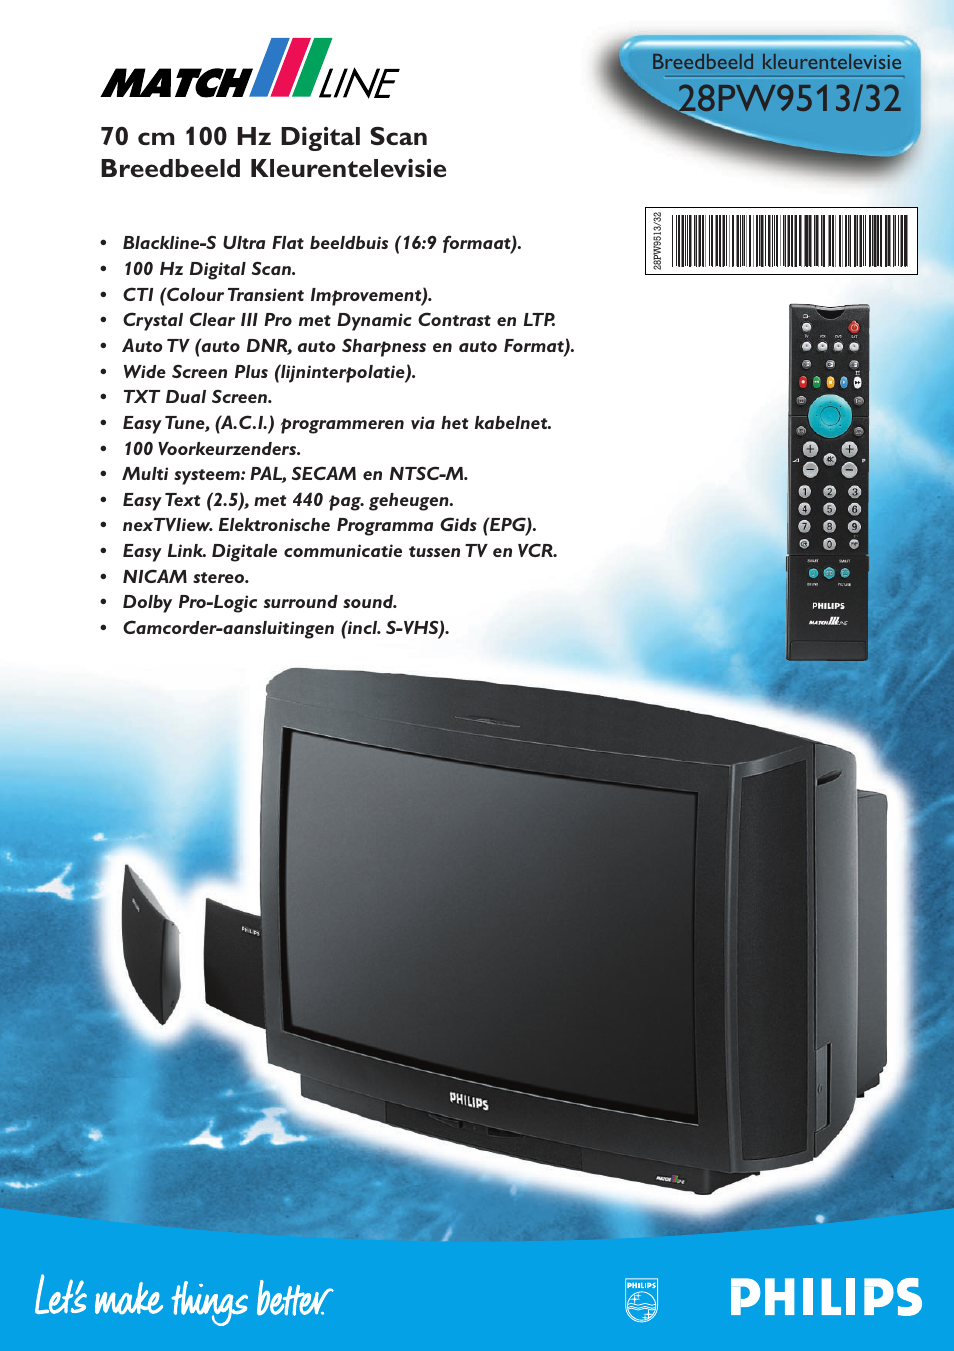 philips match line 28pw9513 32 user manual 2 pages original mode rh manualsdir com philips tv user manual download philips tv user guide